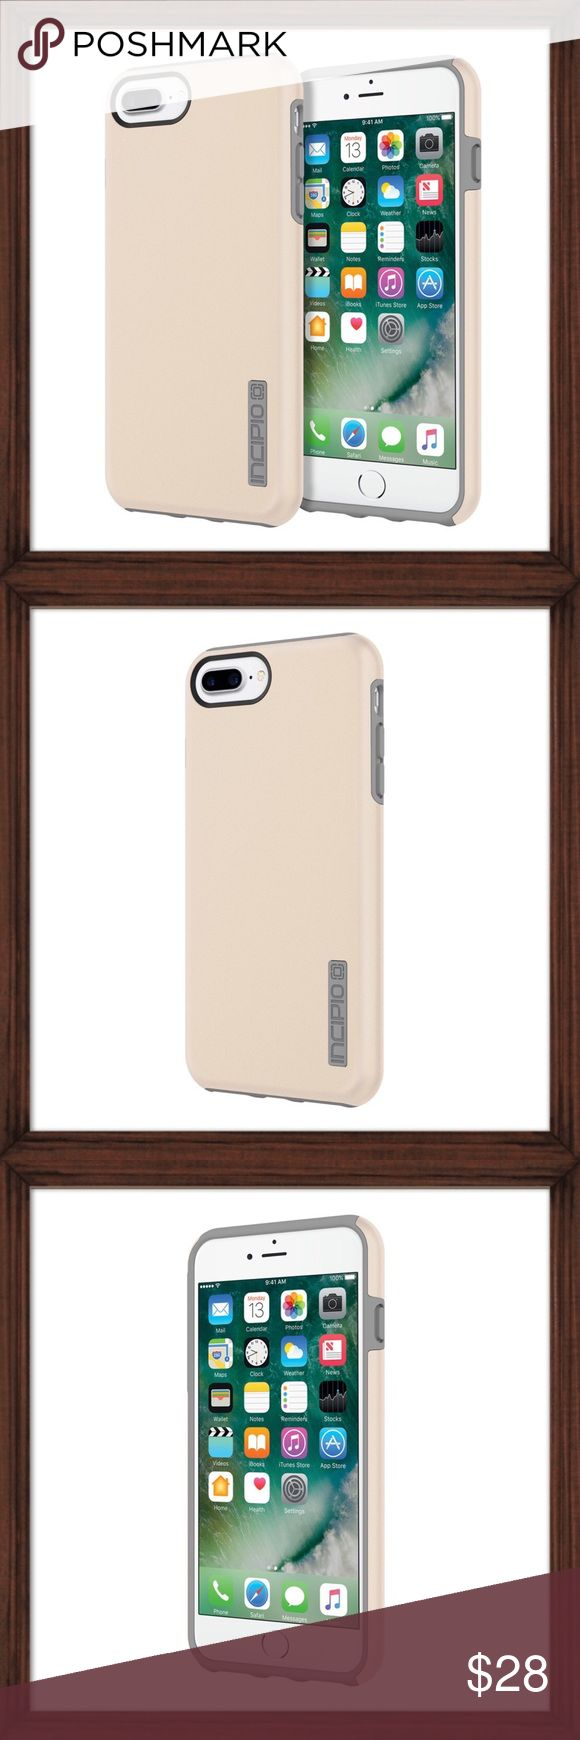 Incipio IPhone 7 Plus DualPro Case Incipio's DualPro® Case with two layers of defense doubles the protection. The soft, inner silicone core and hard, outer Plextonium™ shell work together to keep your device safety the number one priority. Also compatible with iPhone 6 Plus/iPhone 6s Plus. Available in iridescent champagne/grey. Drop tested 12 ft. Incipio Accessories Phone Cases